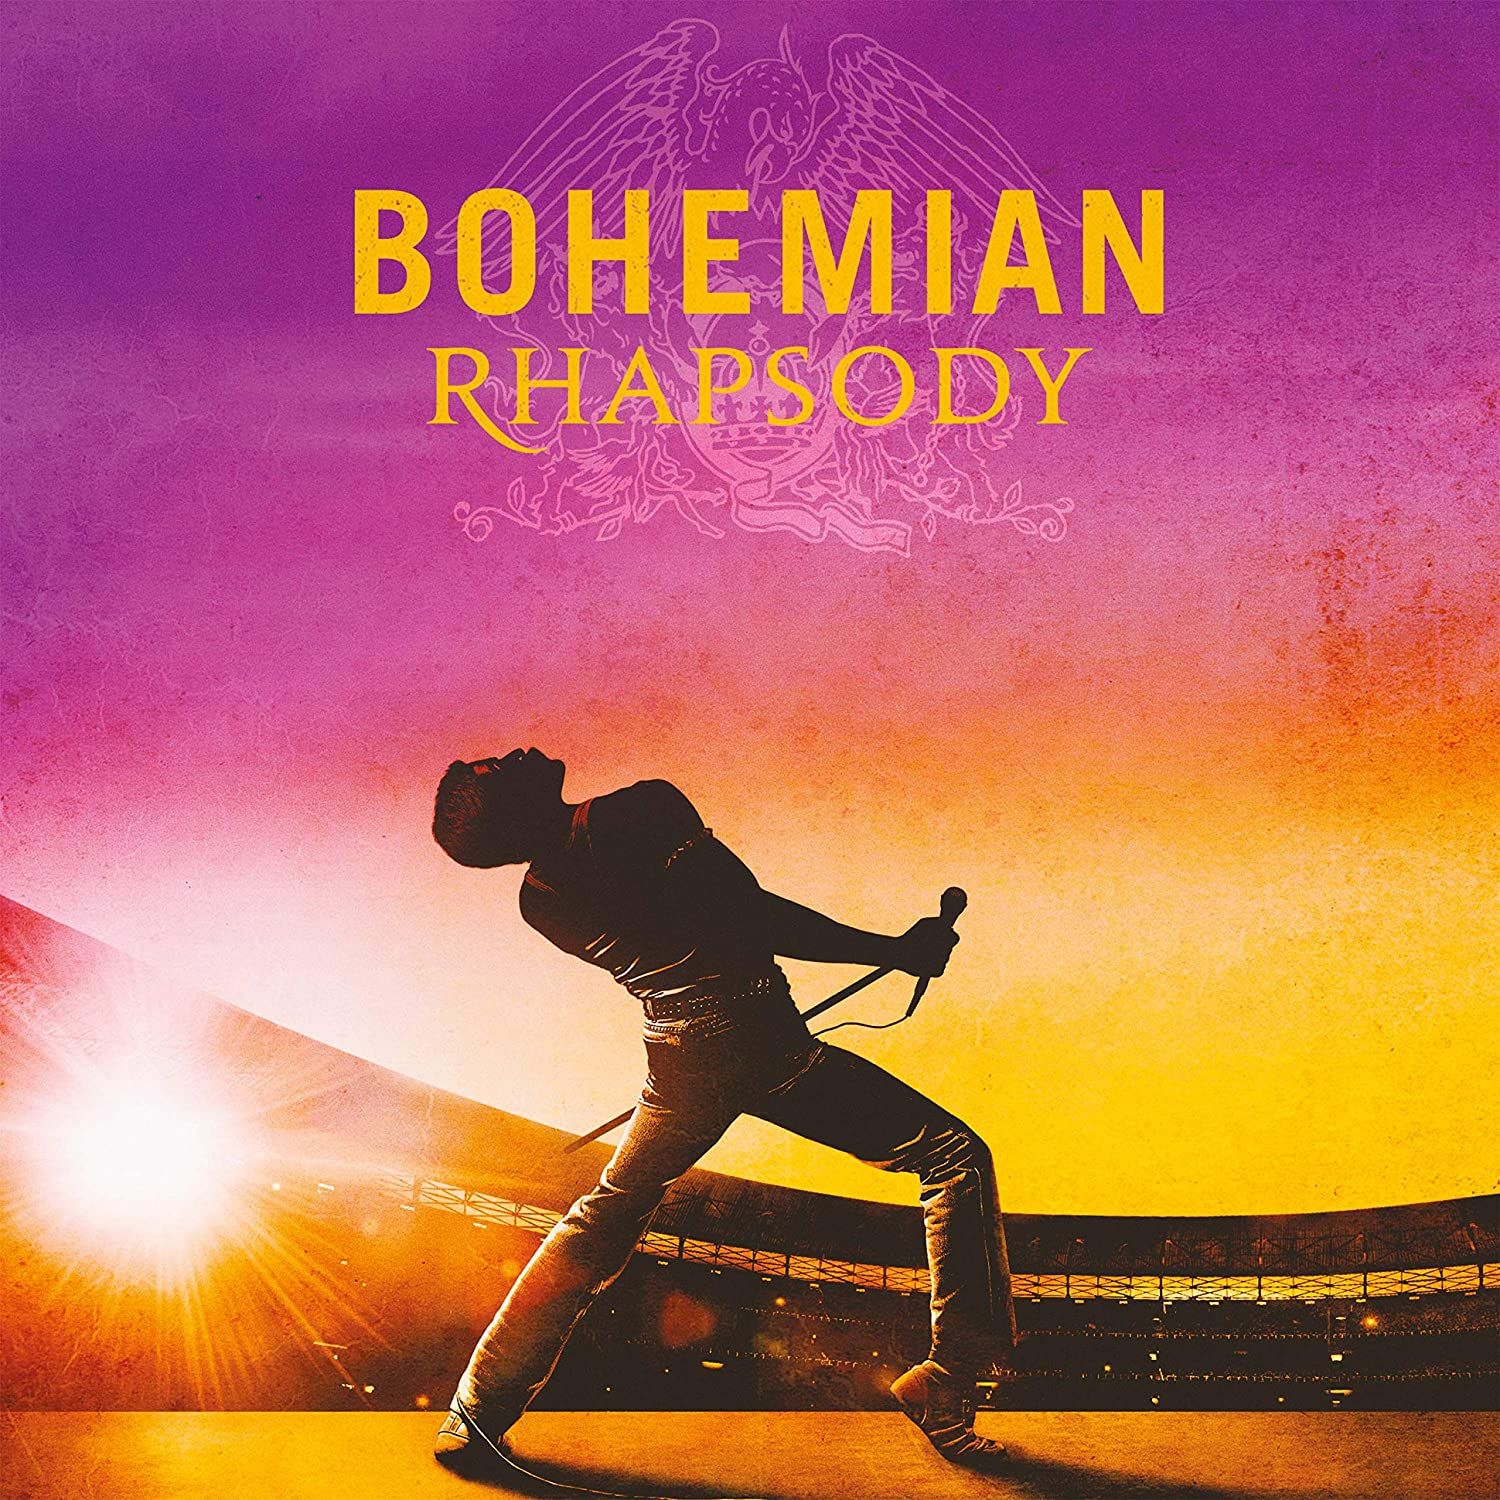 queen bohemian rhapsody other recordings of this song